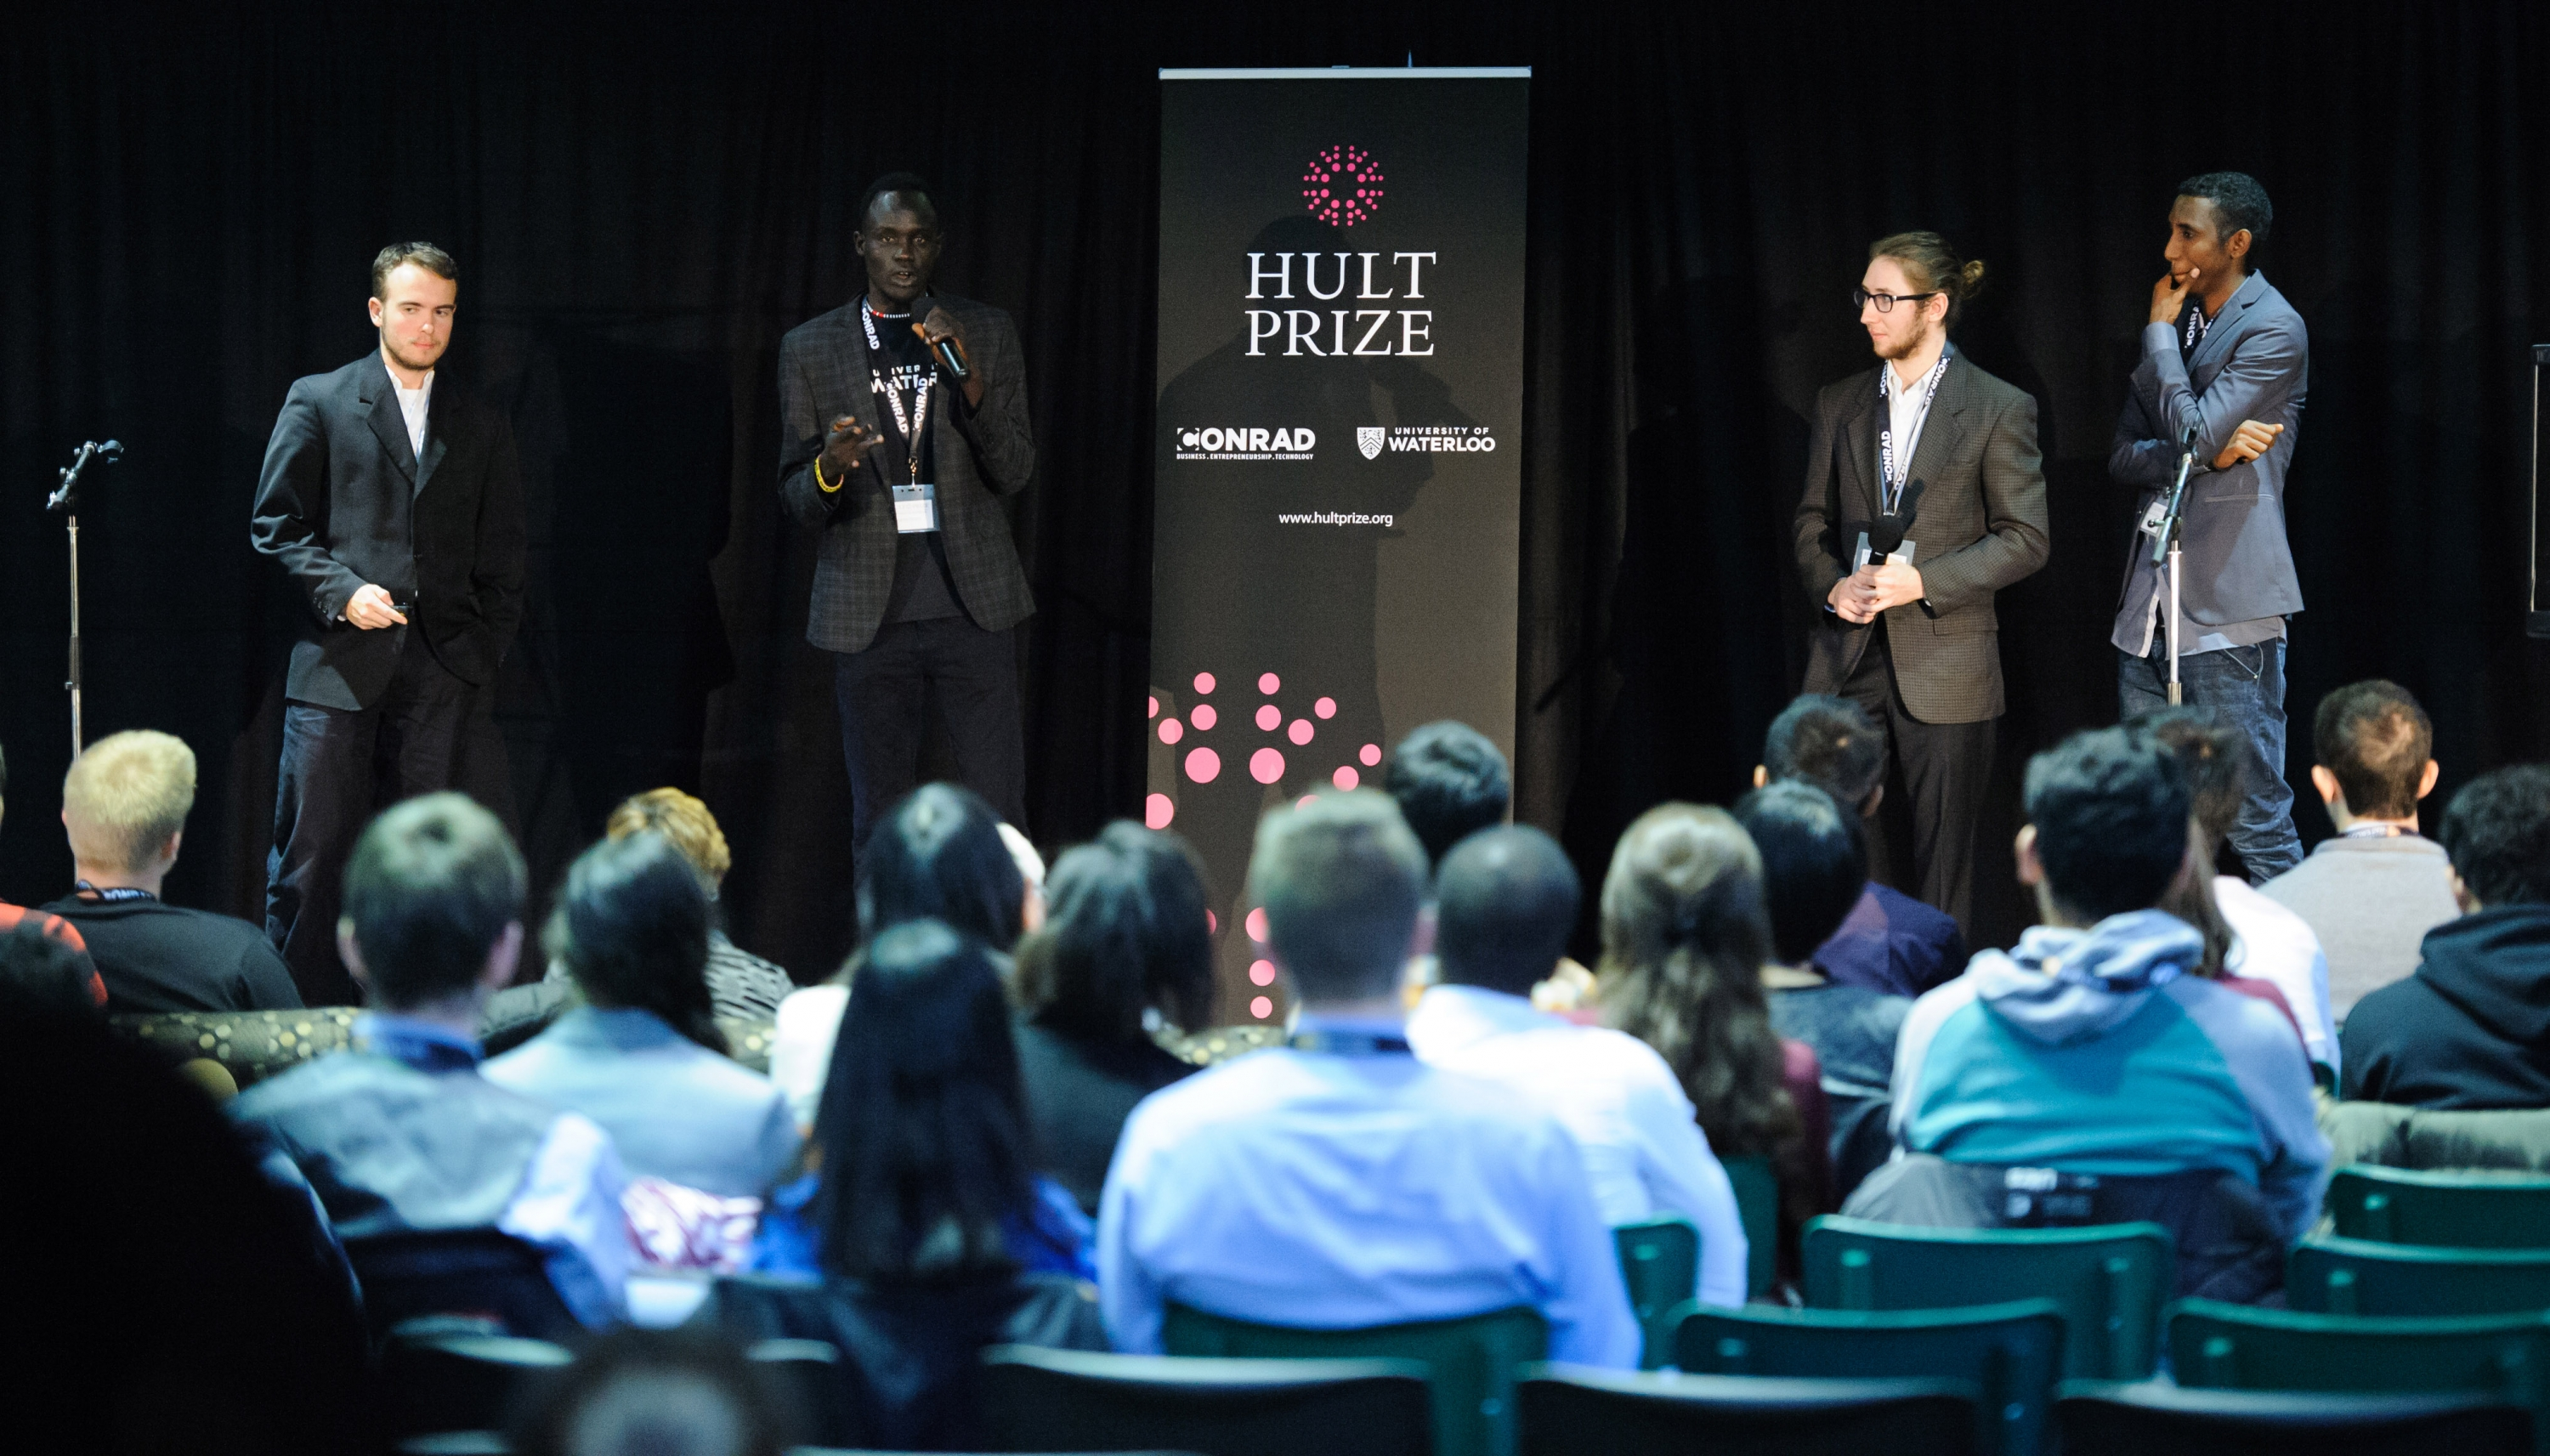 Students participated in the Hult Prize competition at University of Waterloo on November 24